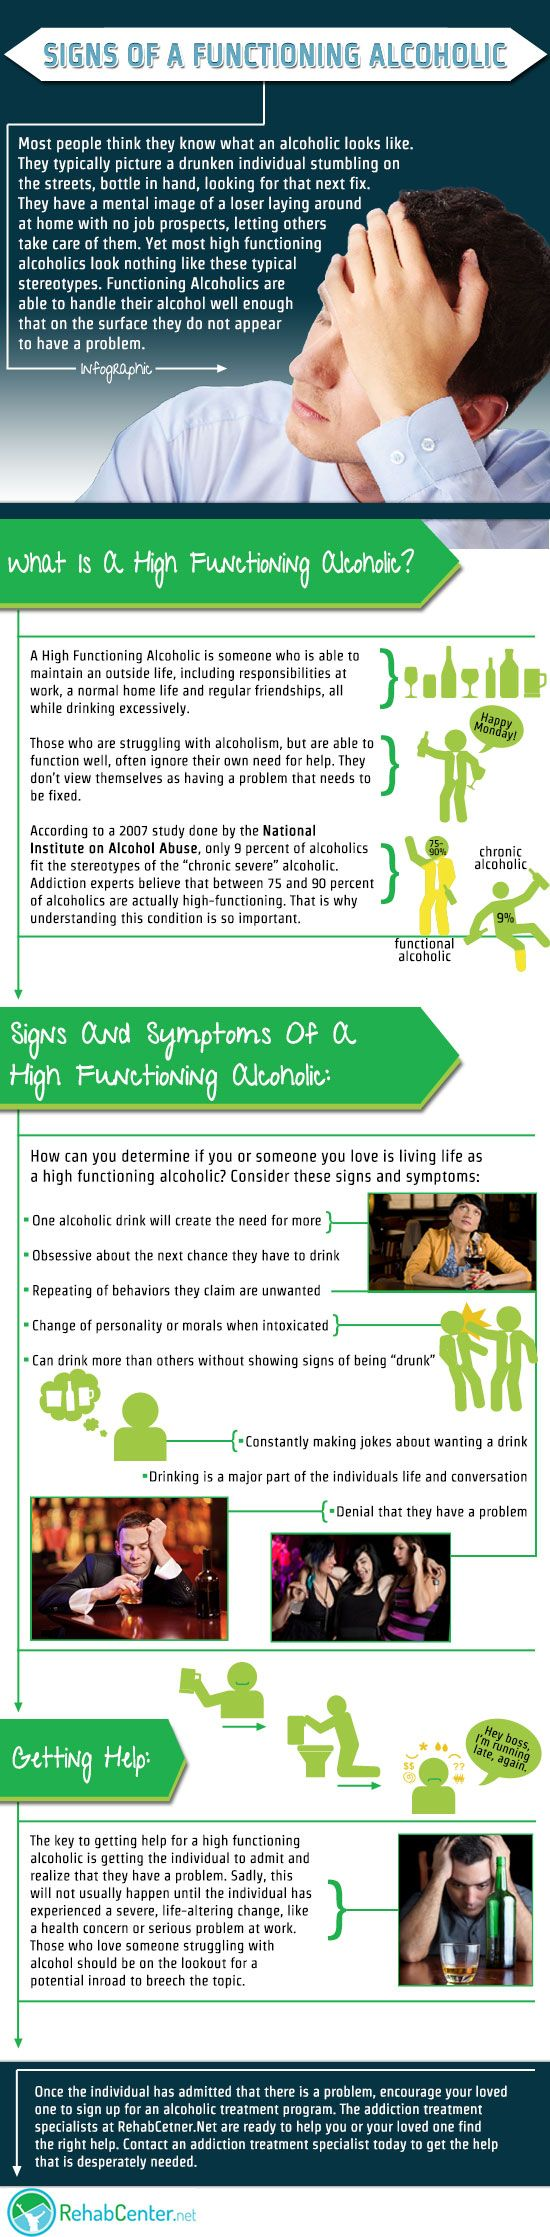 http://www.rehabcenter.net/the-non-stereotypical-alcoholic-signs-of-a-functioning-alcoholic-infographic/  Discover how to identify  a functioning alcoholic with a visually stunning info-graphic that is easy to read and has a PDF version for you to download.